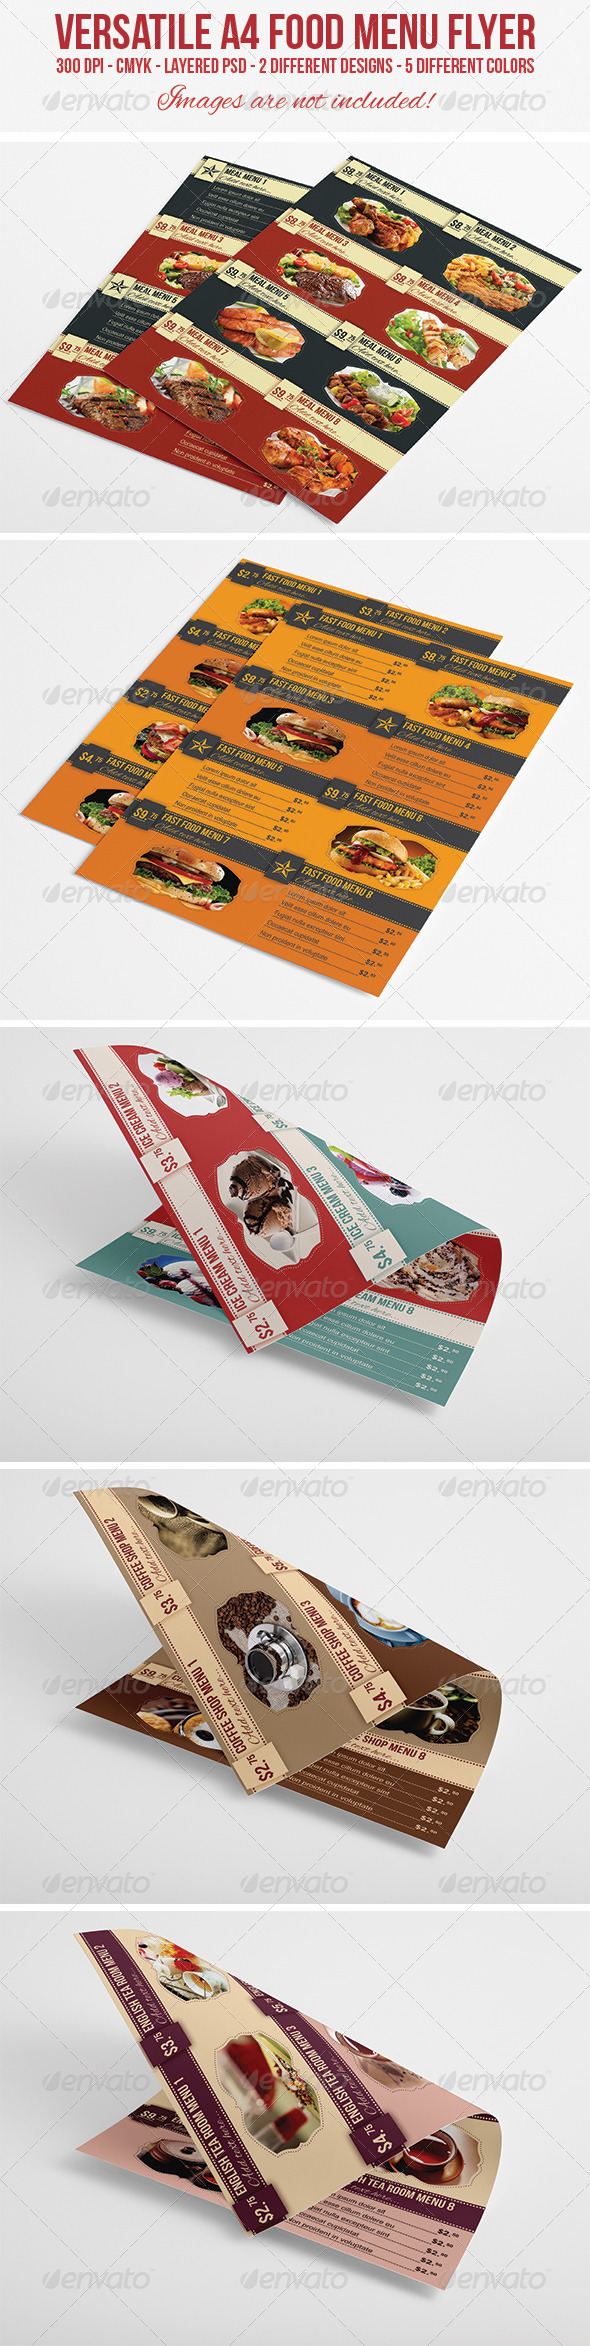 GraphicRiver A4 Food Menu Flyer 5242697